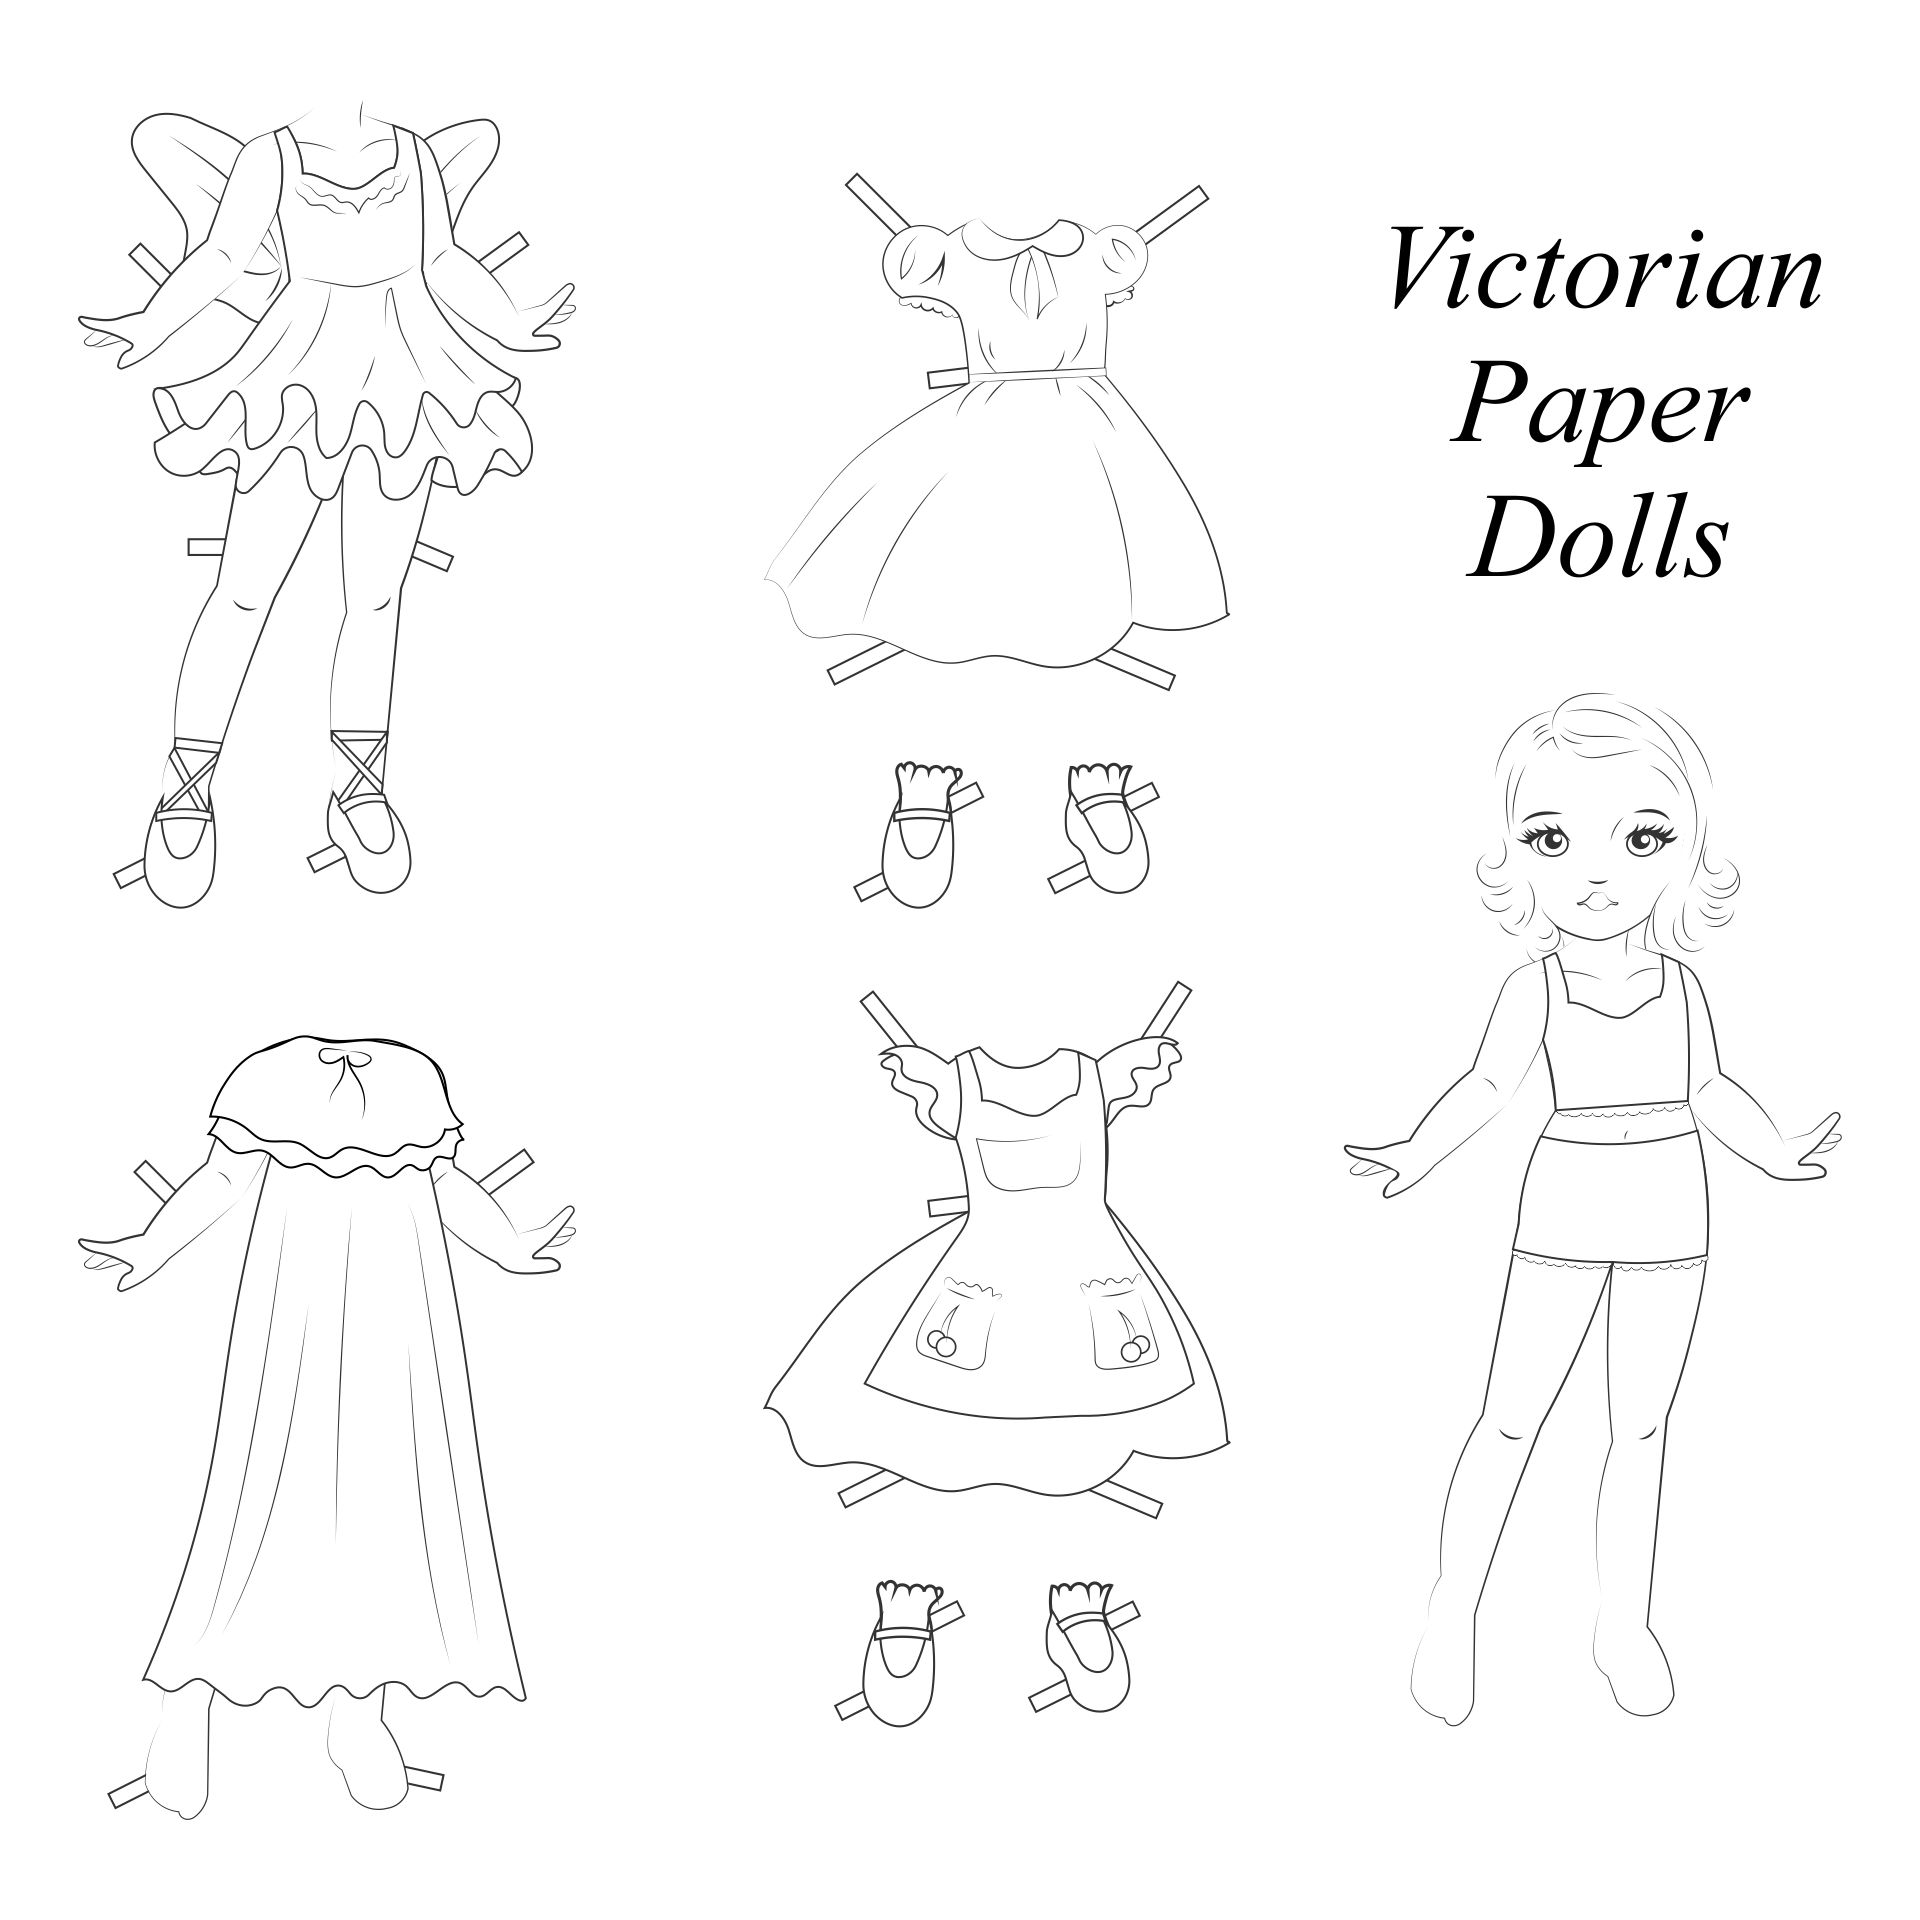 9 Best Printable Paper Dolls To Color - printablee.com